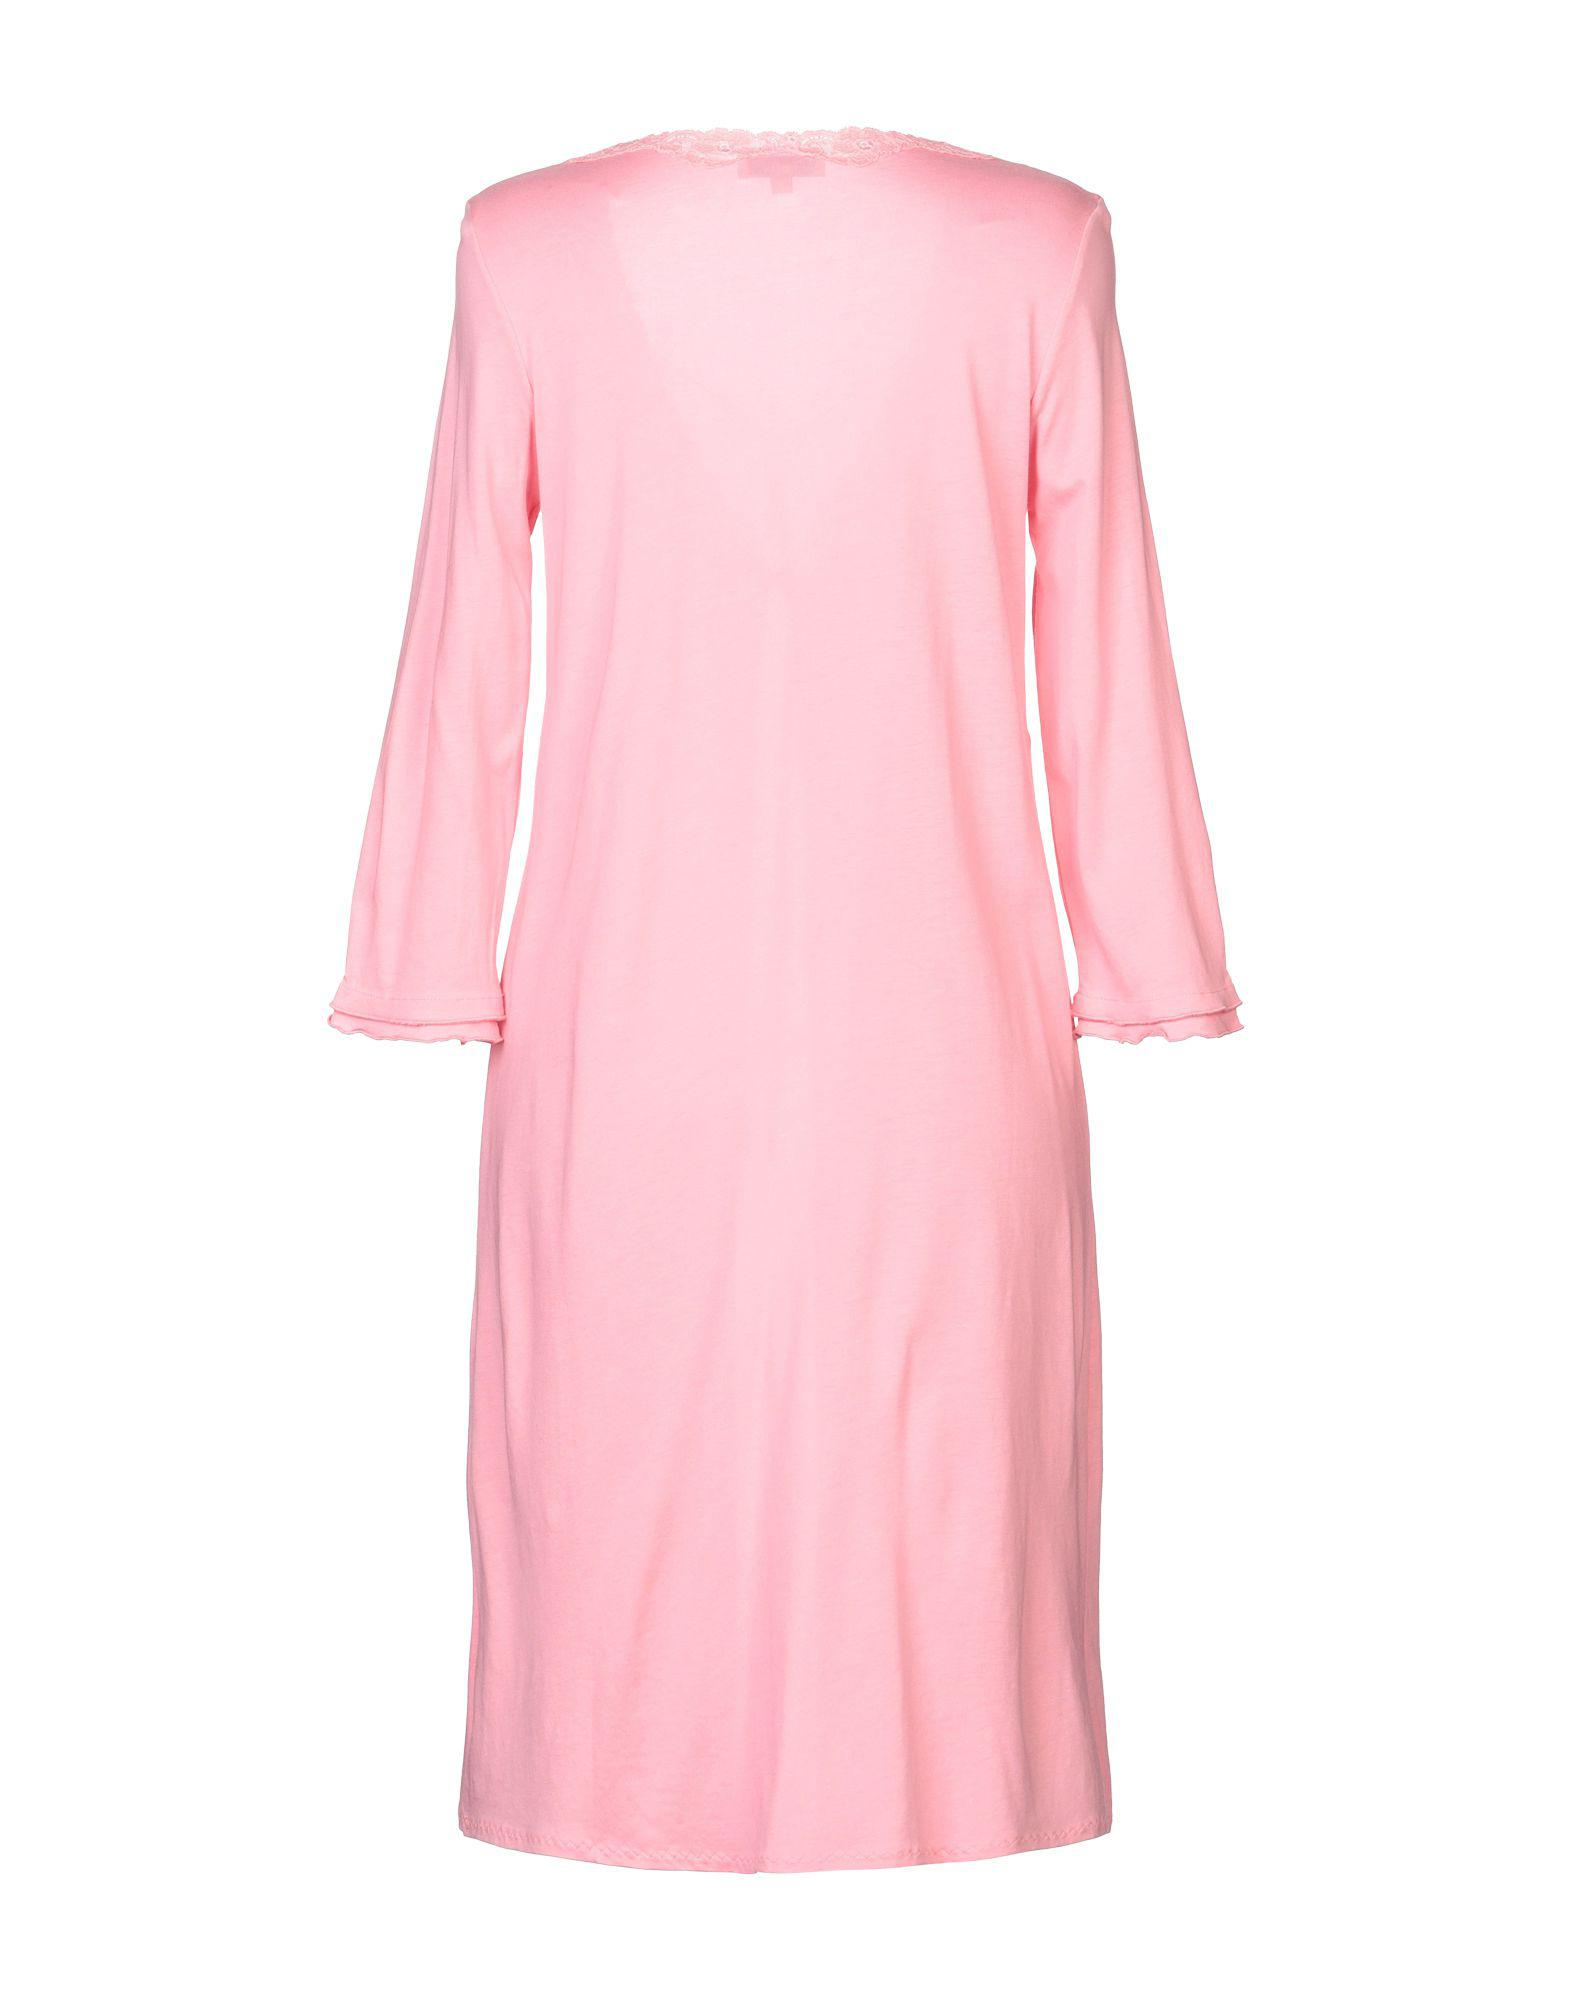 1c060fa03e Vivis Dressing Gown in Pink - Lyst